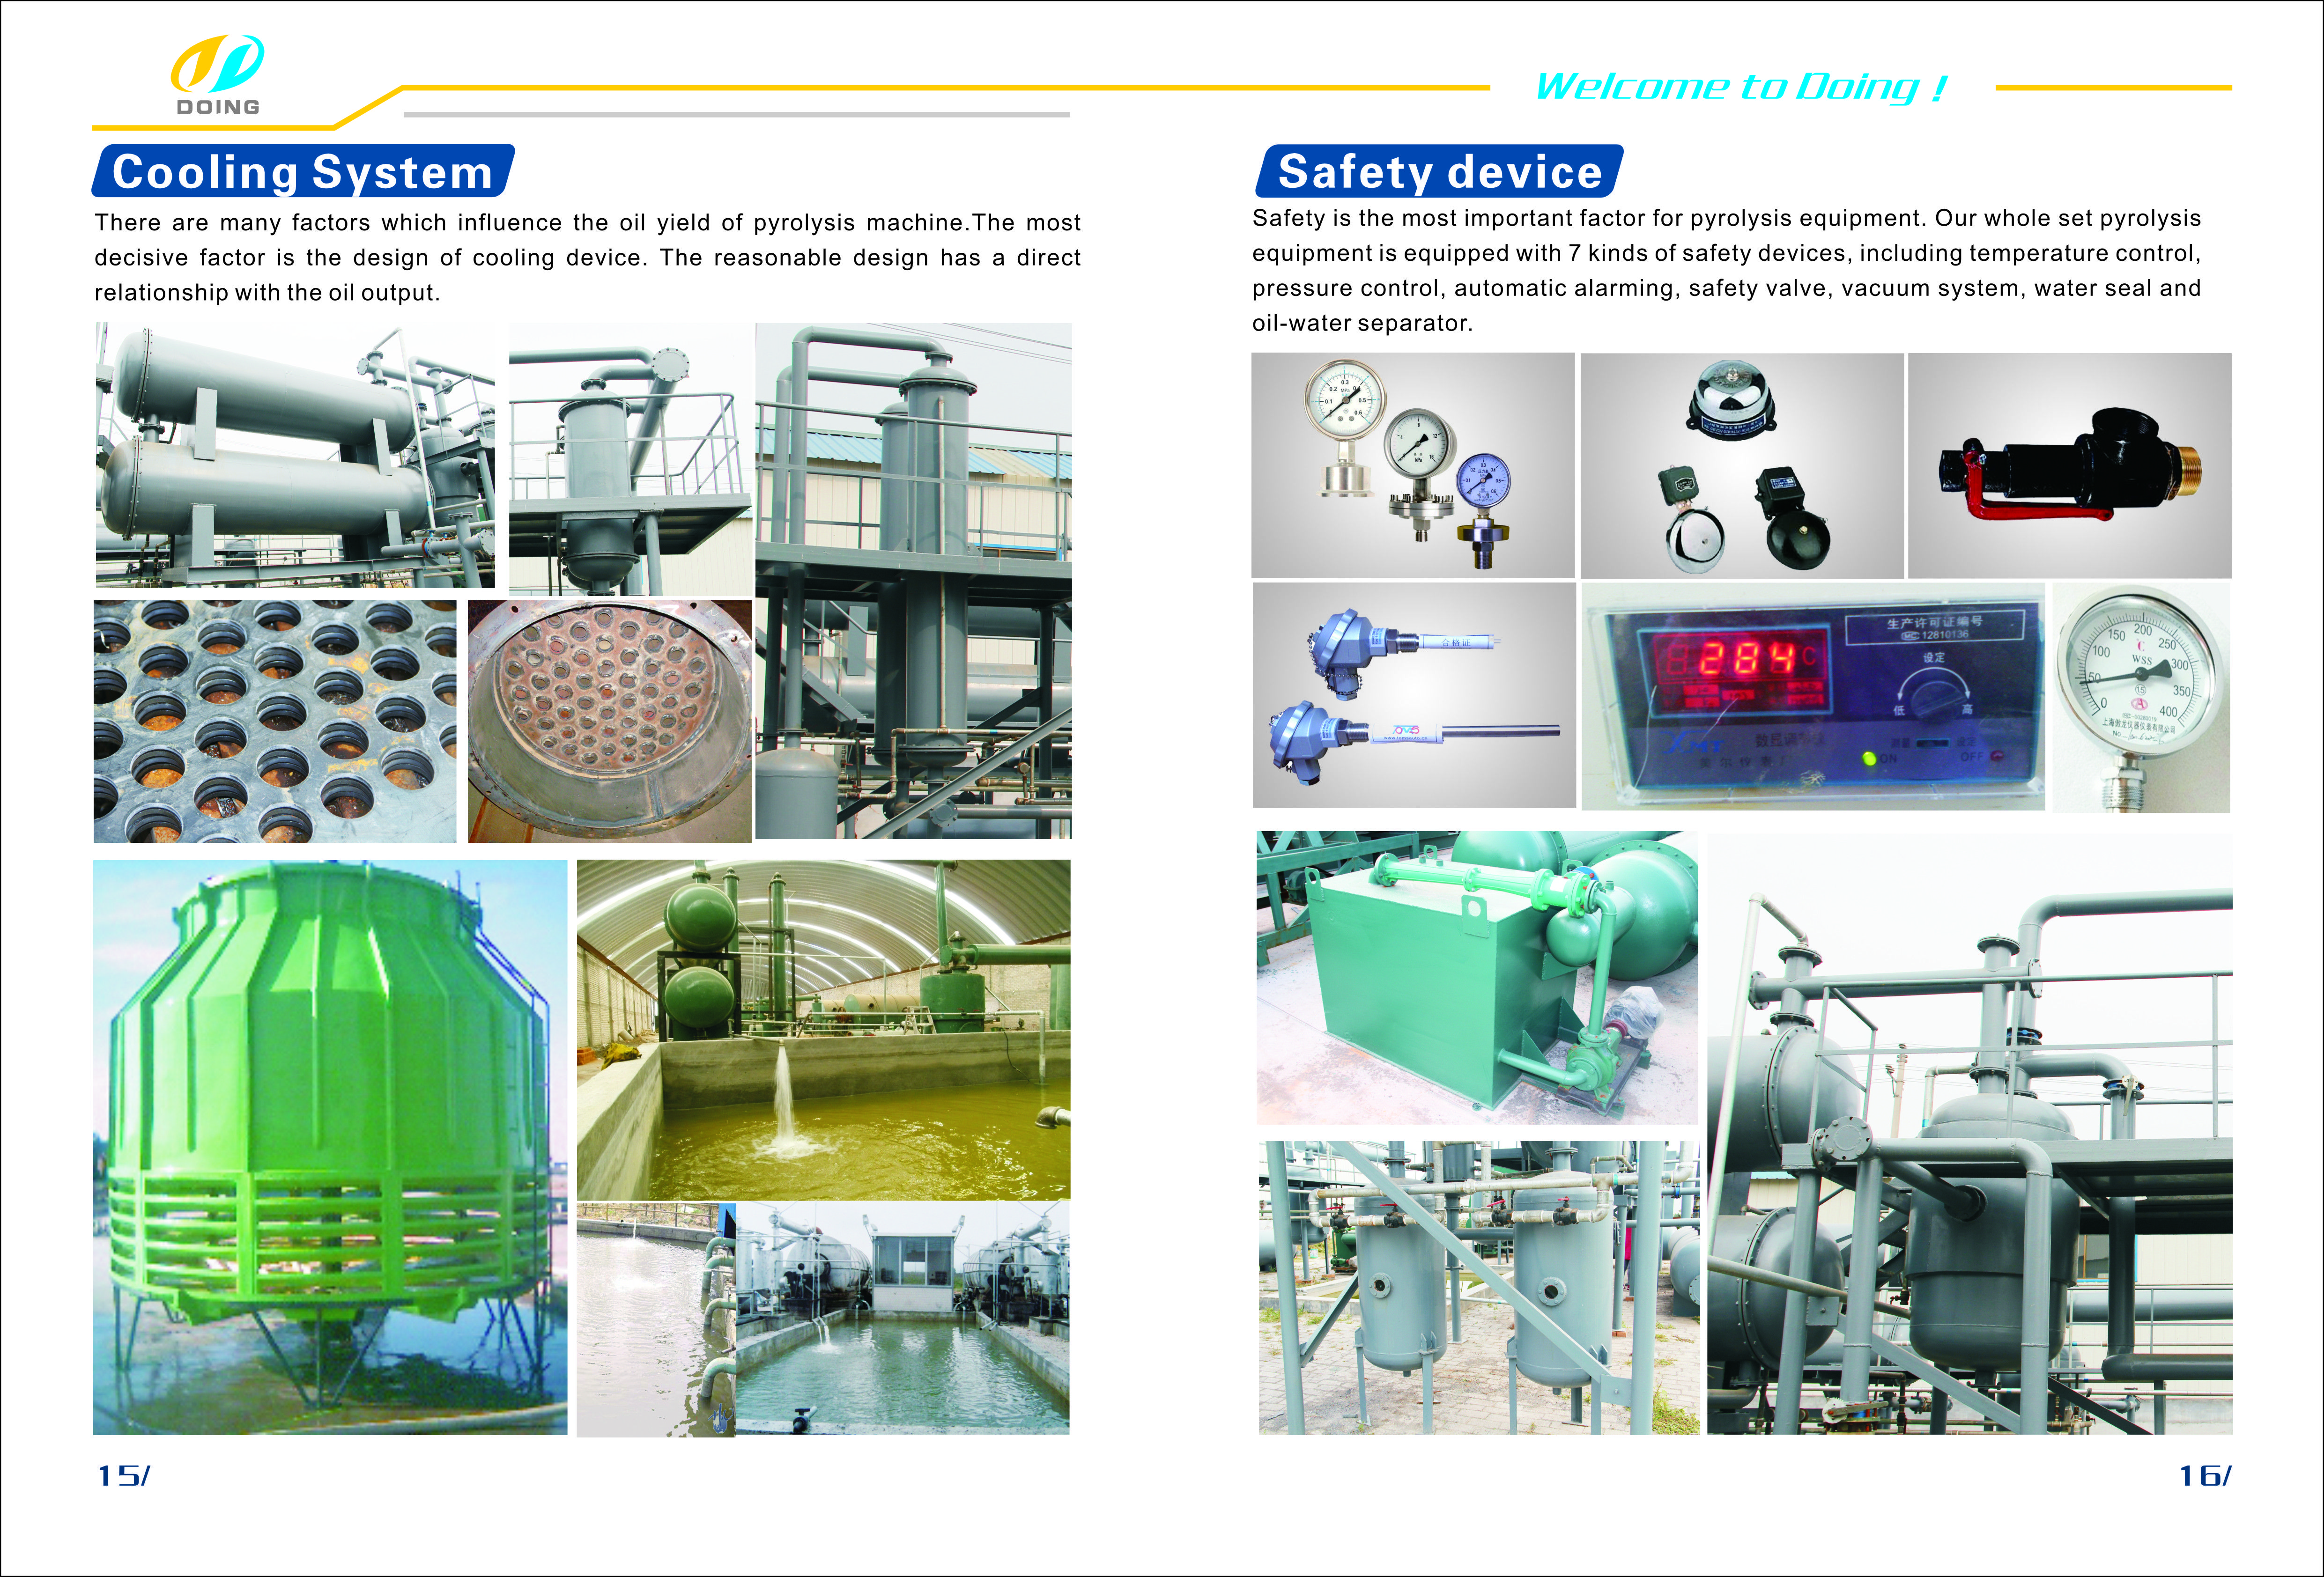 DOING pyrolysis plant are designed with 3 steps cooling